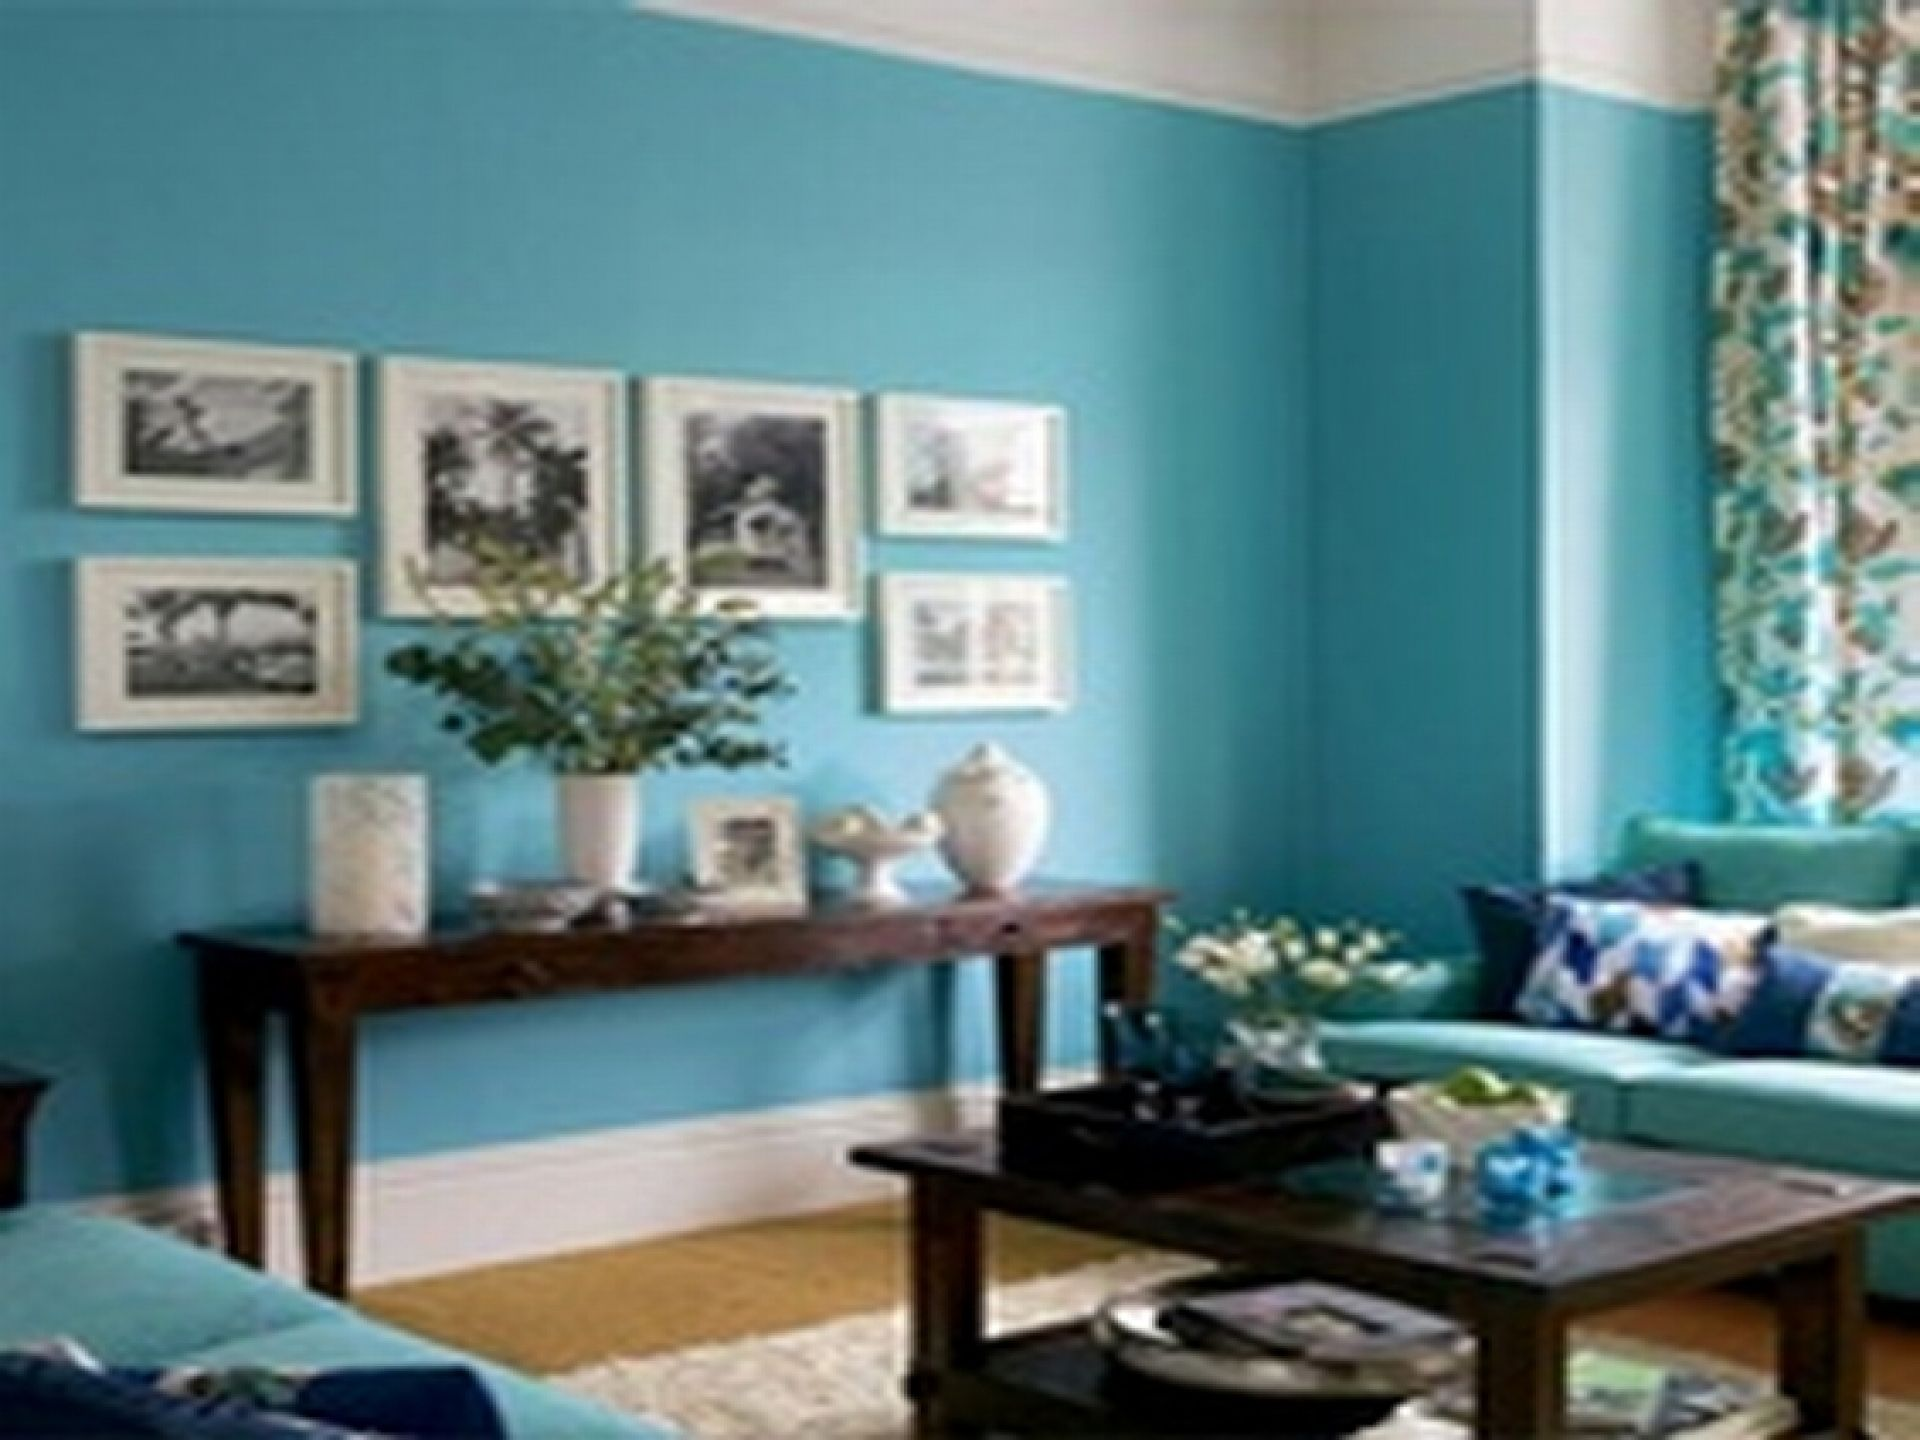 Interior Decor Brown Turquoise Blue Paint Colors Decorating Ideas Enchanting Brown And Turquoise Living Room Inspiration Design